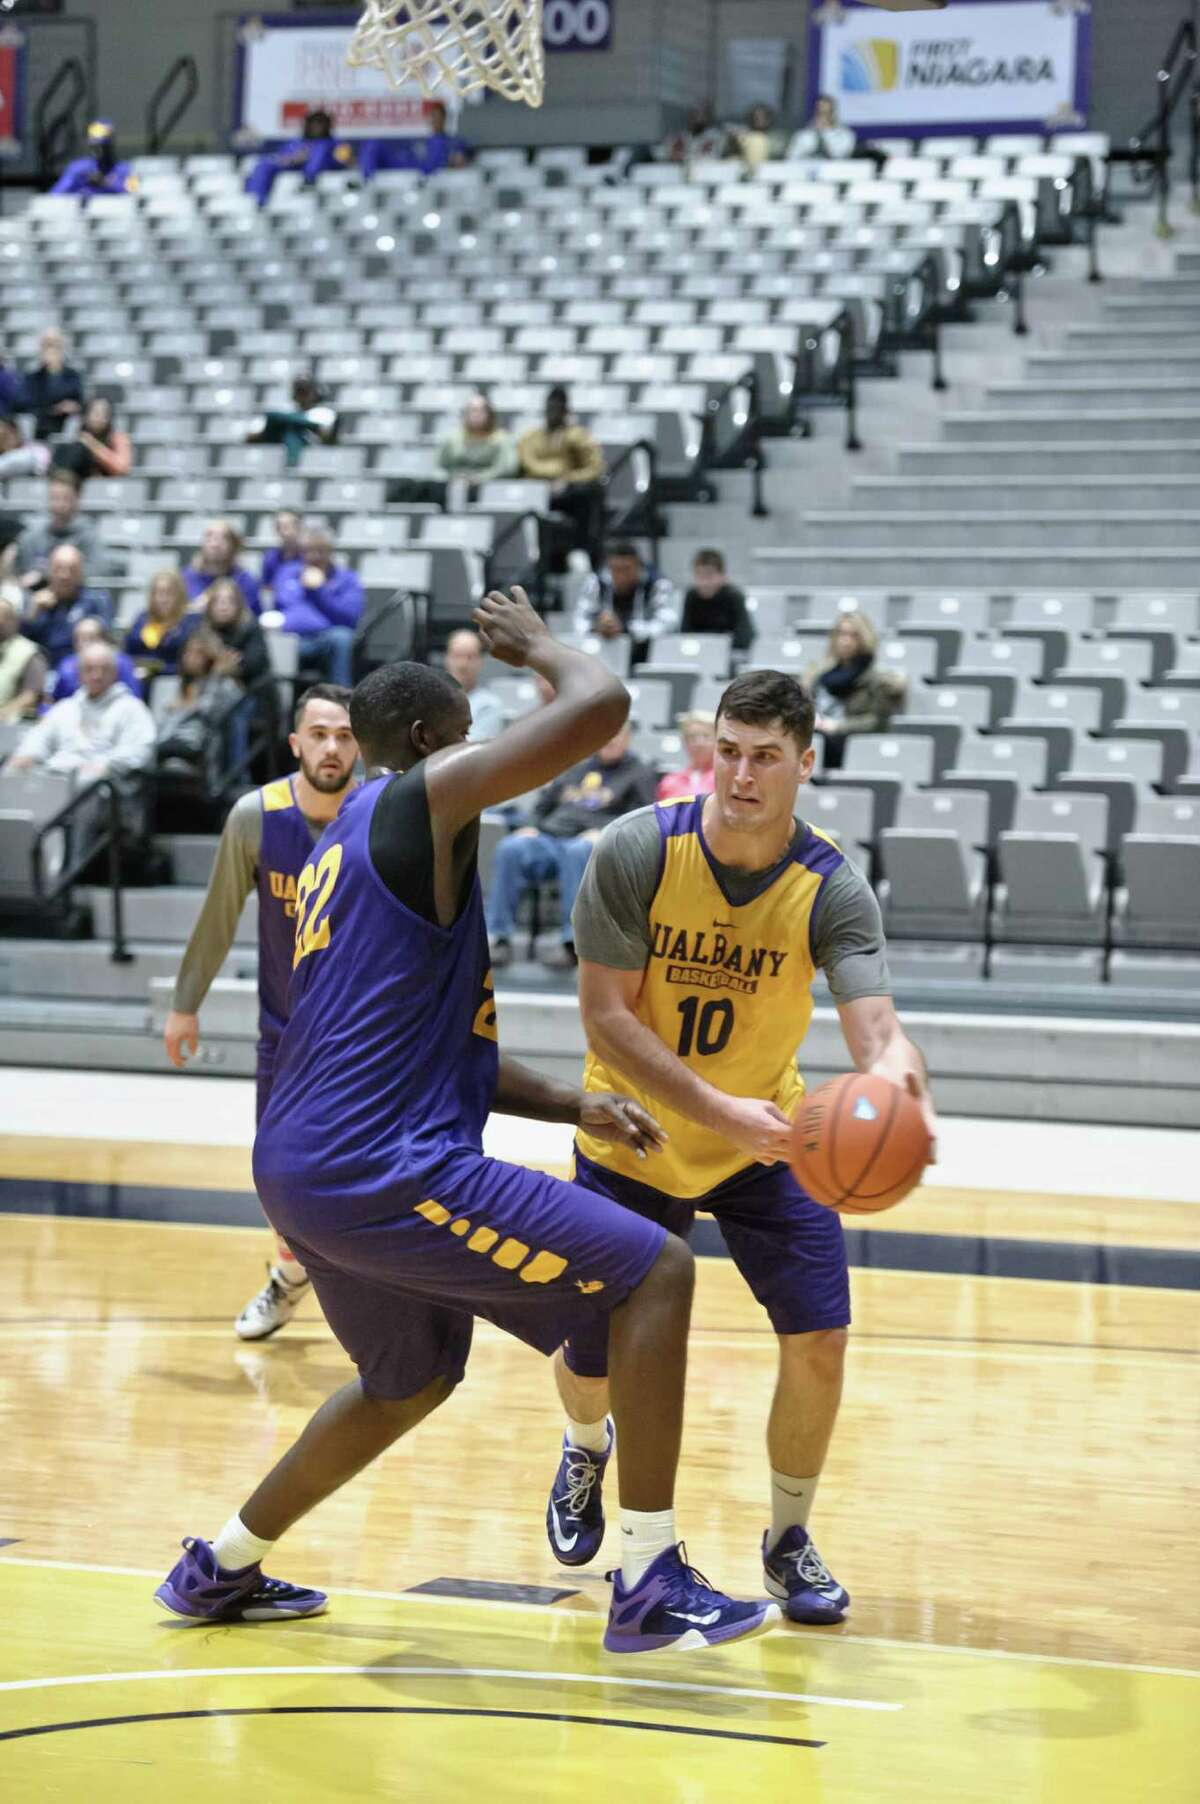 U Albany's Mike Rowley looks for an open teammate past Richard Peters during the scrimmage game at SEFCU Arena Saturday, October 17th, 2015. Photo By Eric Jenks, for the Times Union